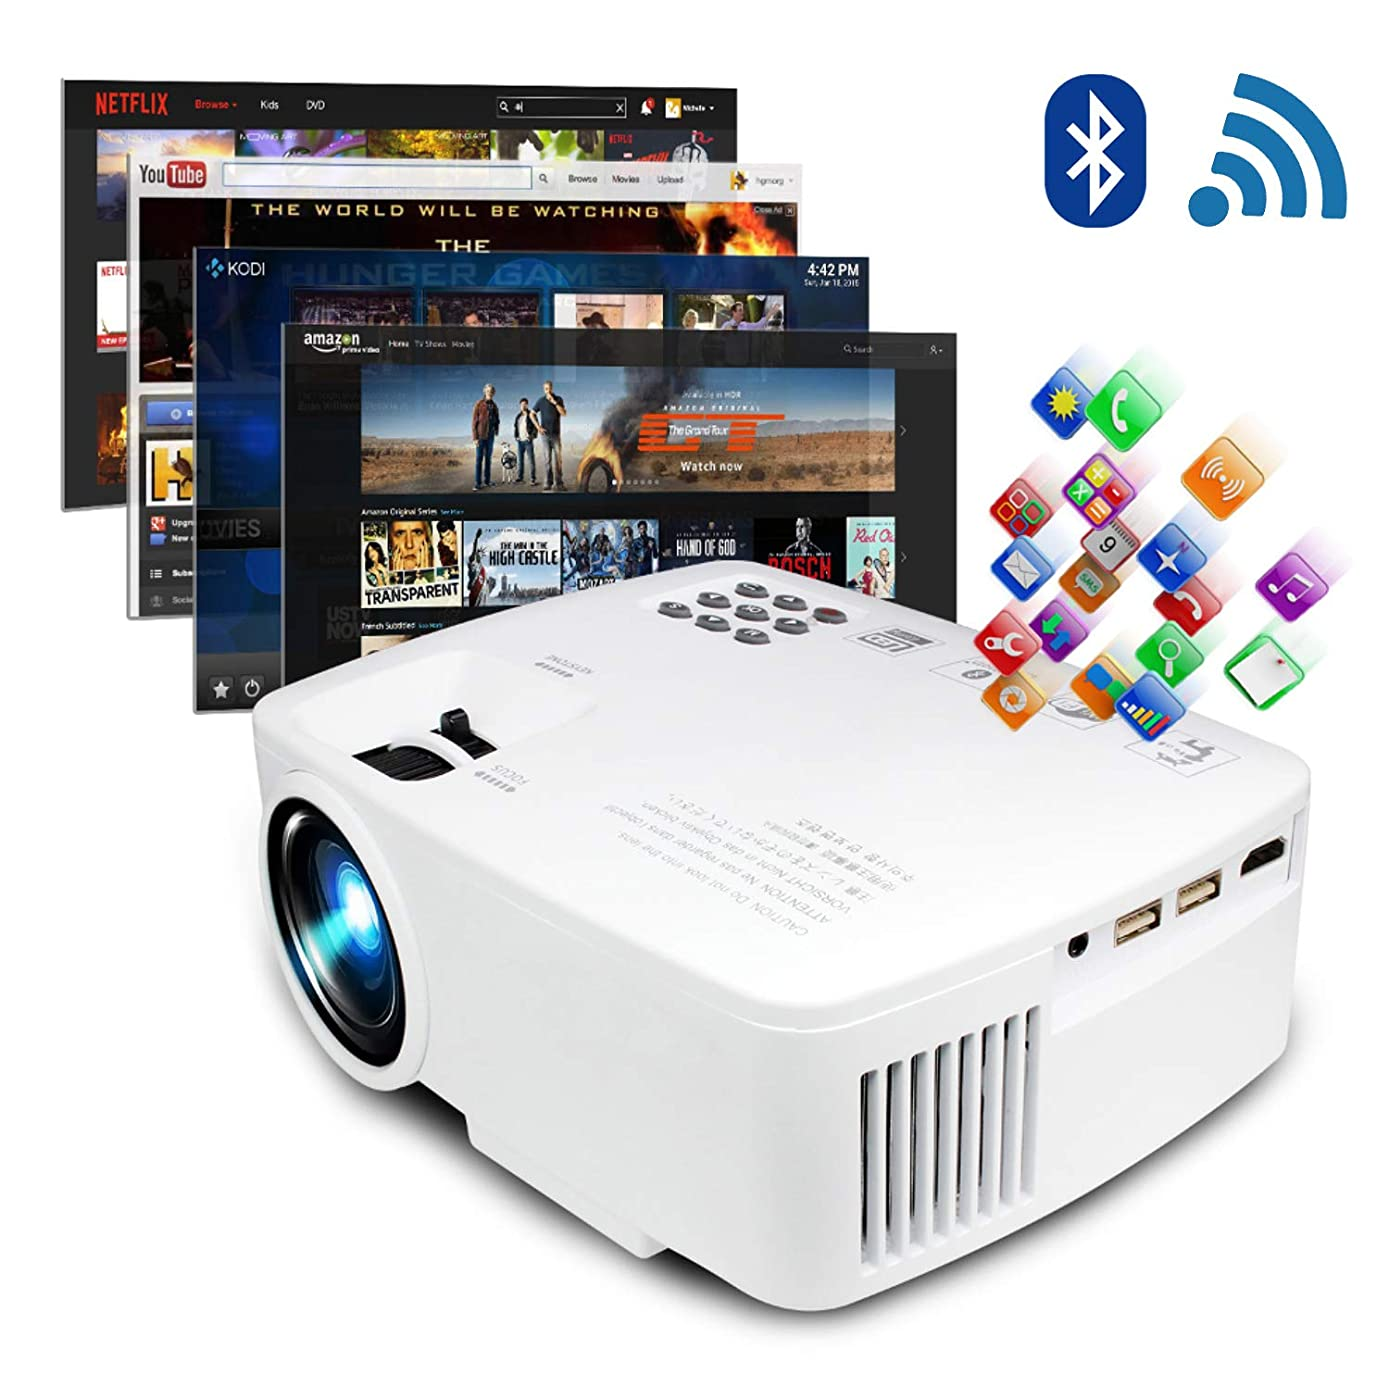 ERISAN Projector Video Home TV Theater, LED Android 6.0 WiFi Bluetooth, 220 ANSI Lumen, Support 1080P Full HD, iOS Compatiable, 2018 Updated Quieter Fan, Mini Smart Video Beam, Multimedia Party Games